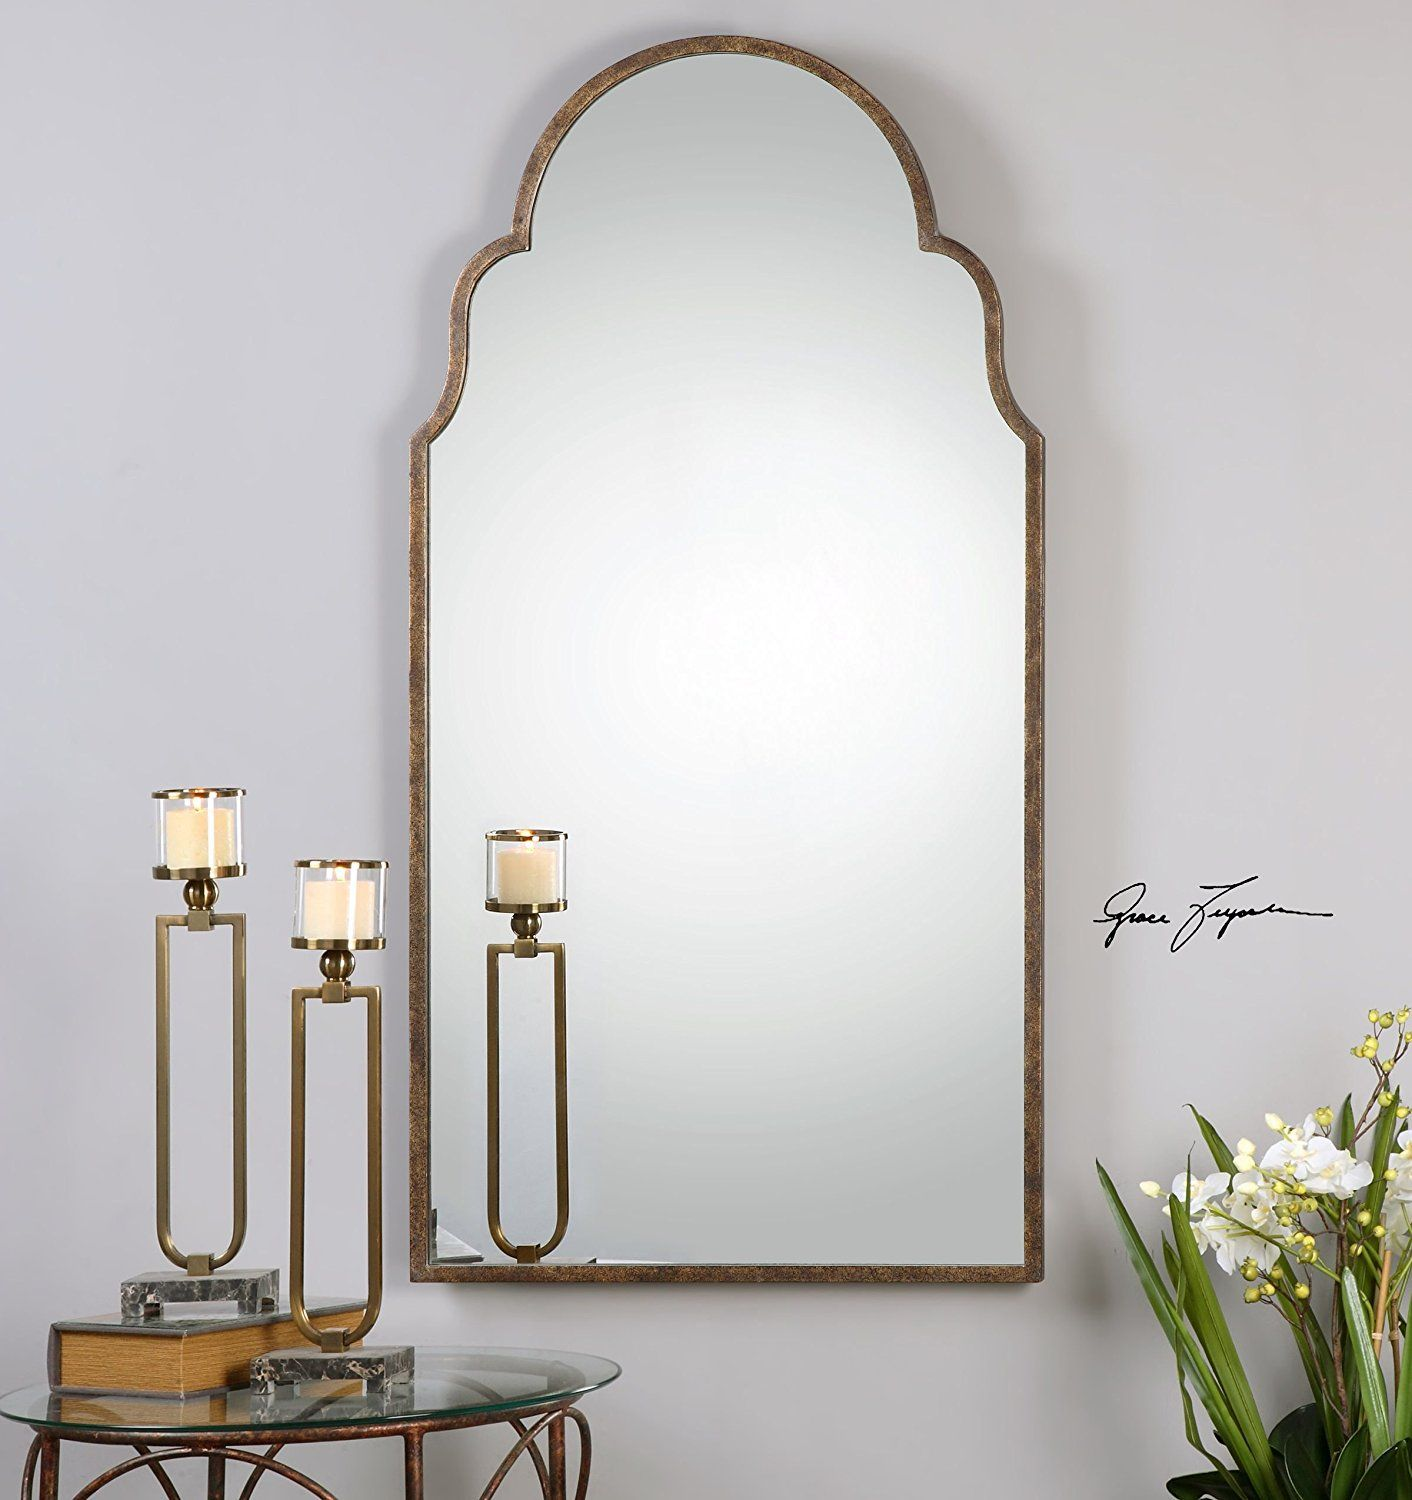 Amazon.com: Full Length Shaped Arch Wall Mirror | Curved Tall ...